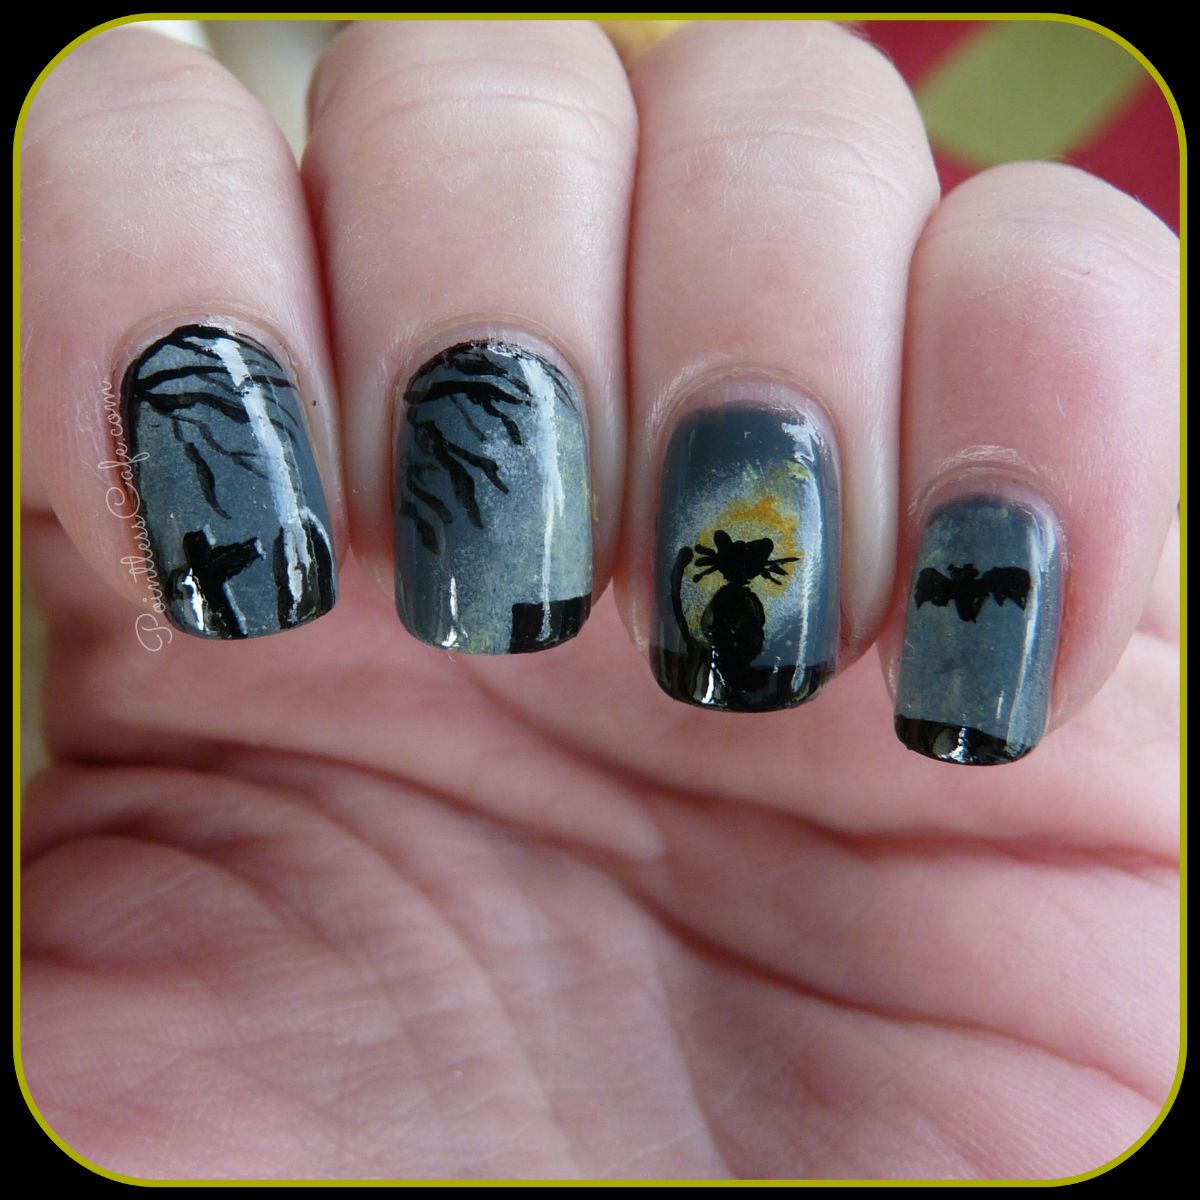 Spooky Halloween Nail Art: Black Cat in the Moonlight | Pointless Cafe